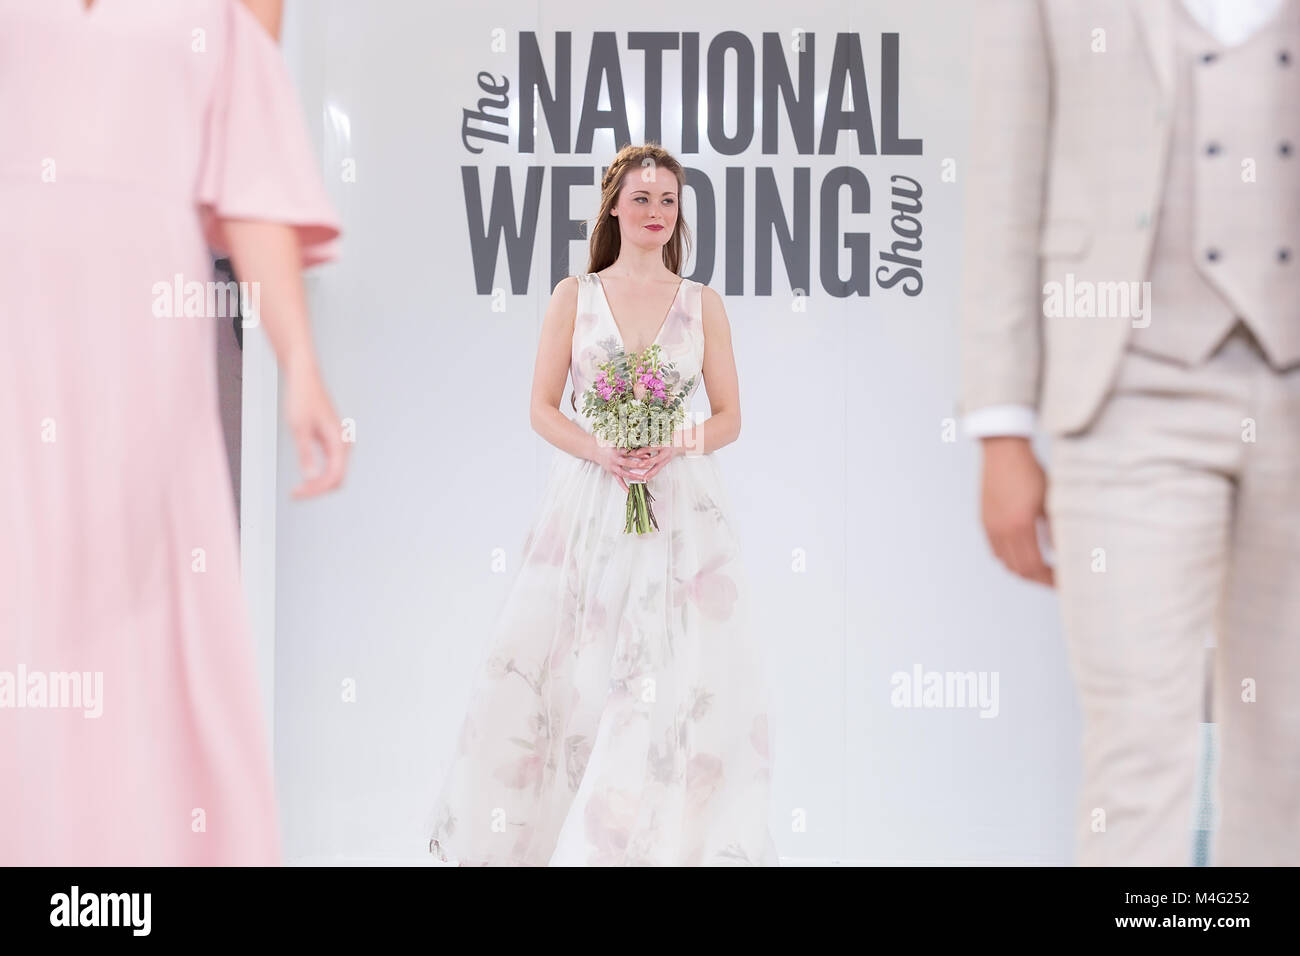 London, UK. 16 February 2018. Models on catwalk showcasing wedding ...